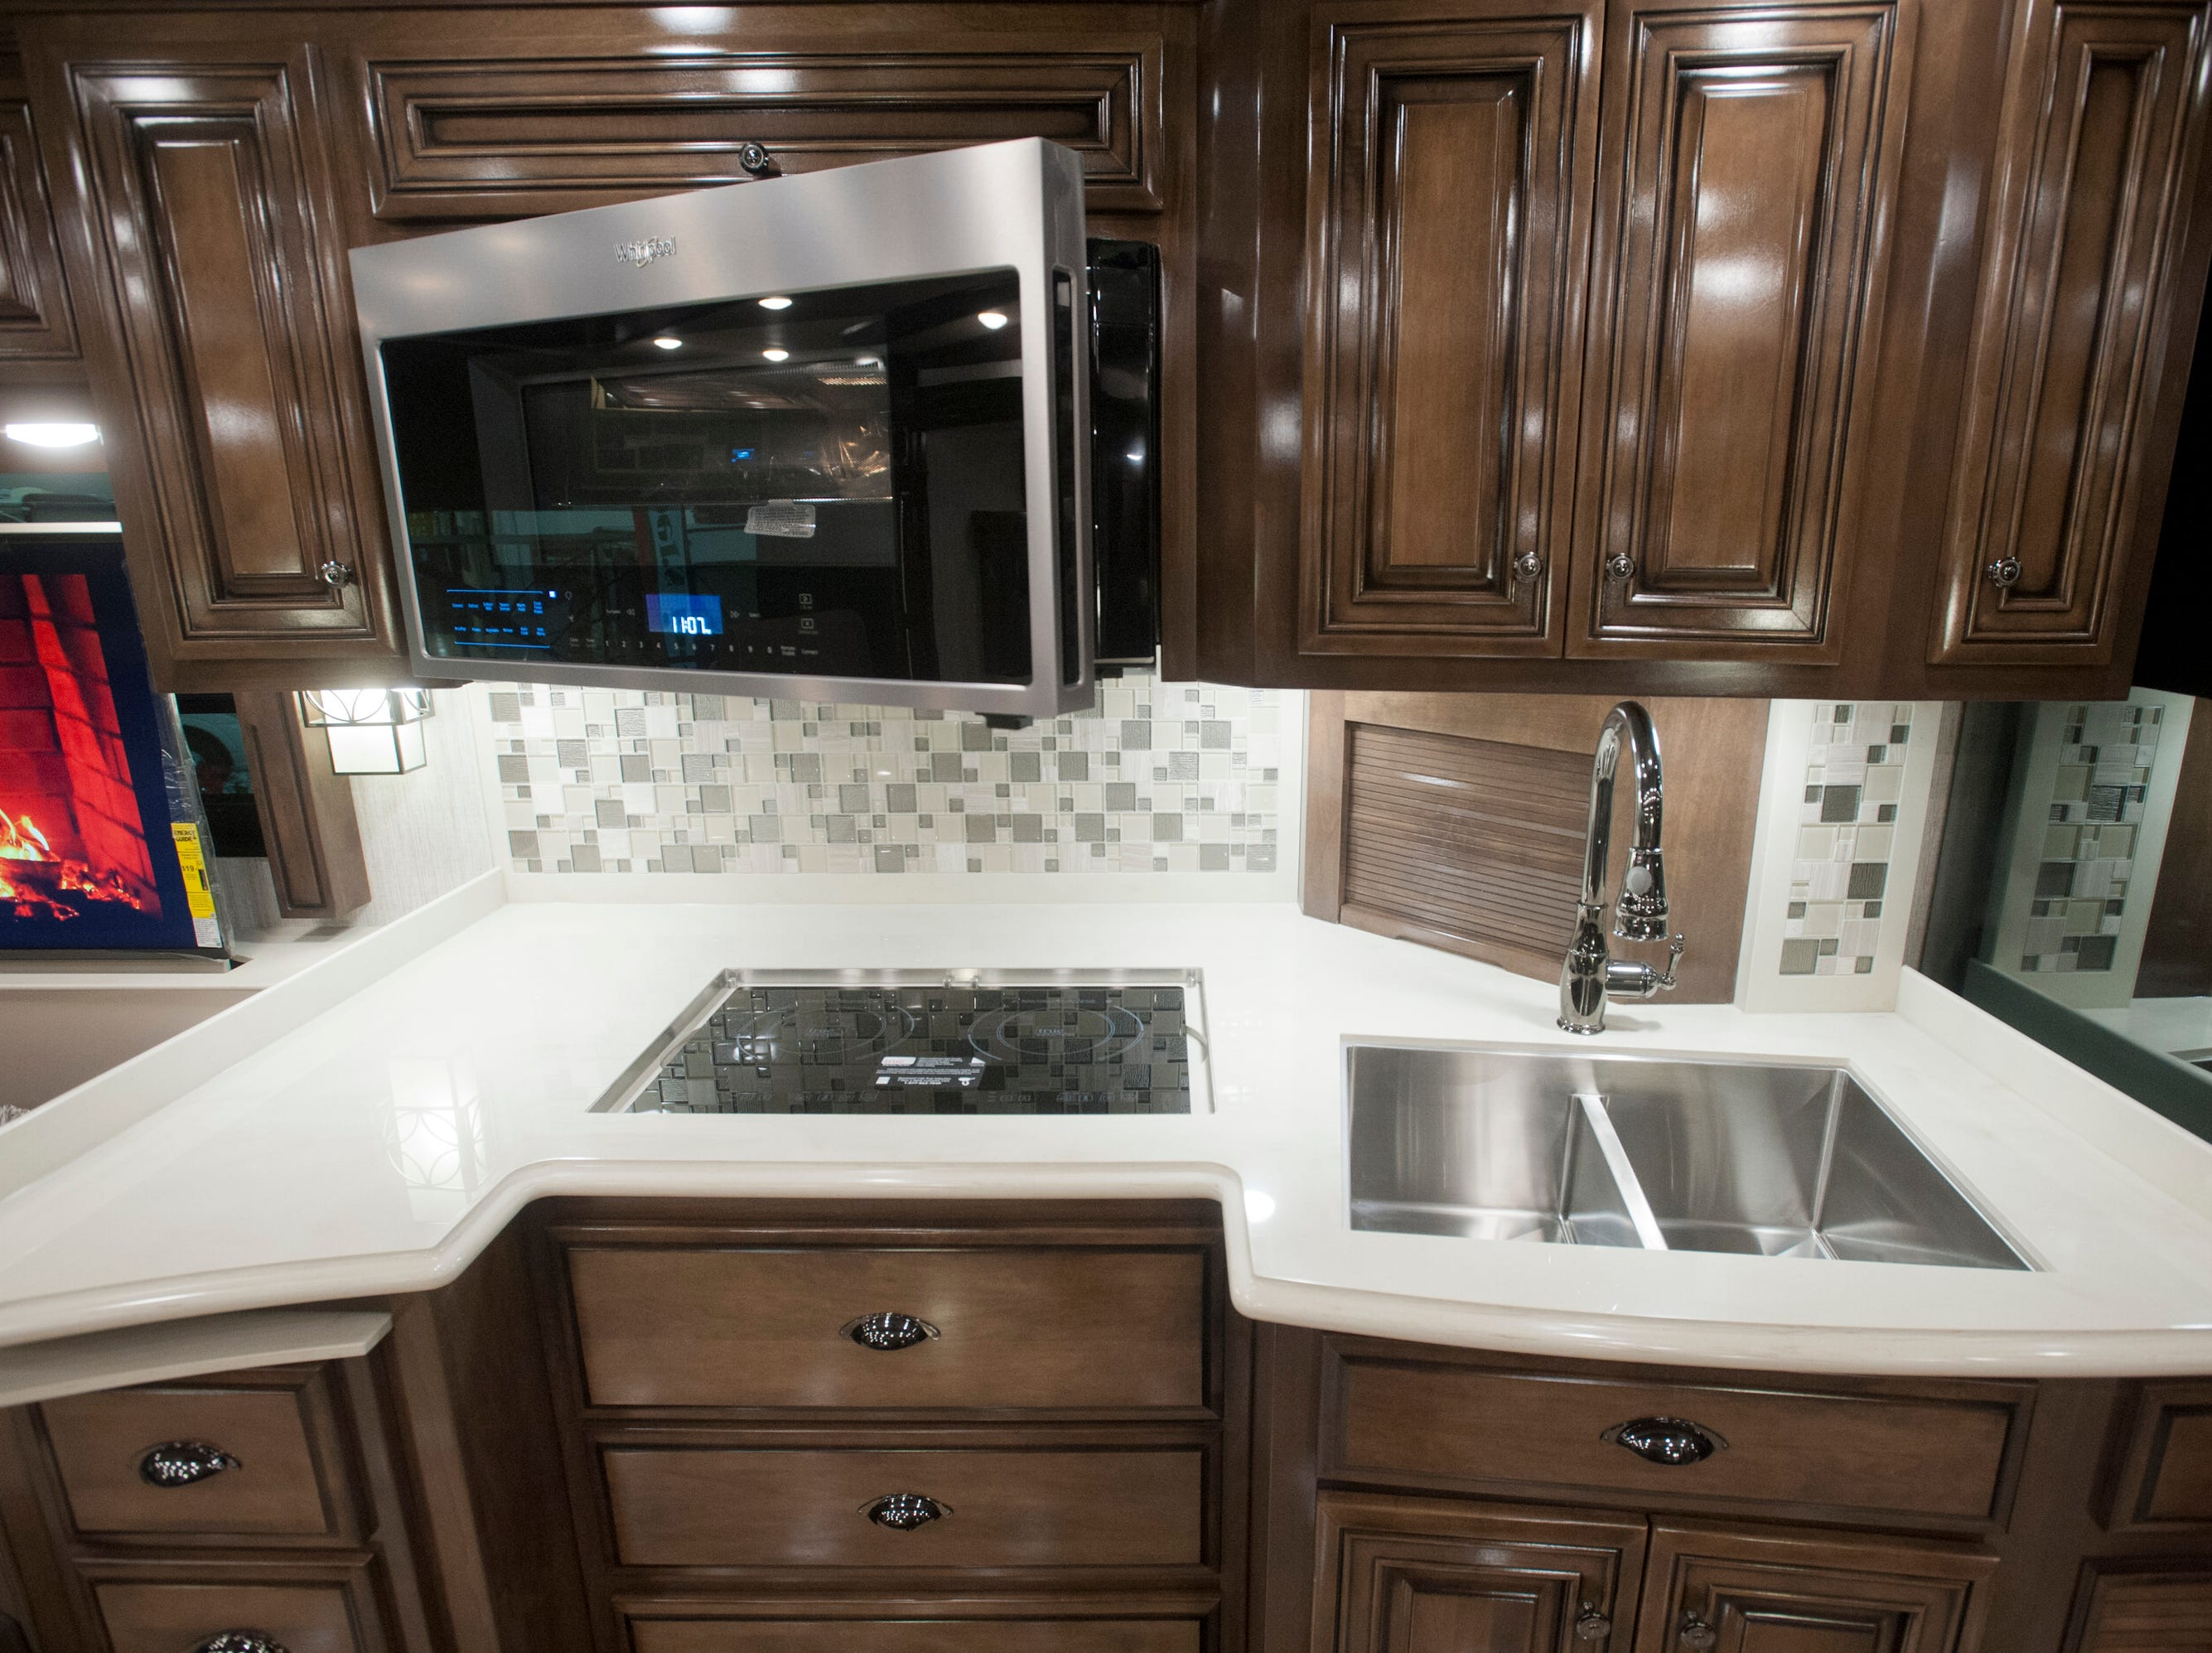 The kitchen with an induction stove top, a combination convection and microwave oven, and a steel double-sink.